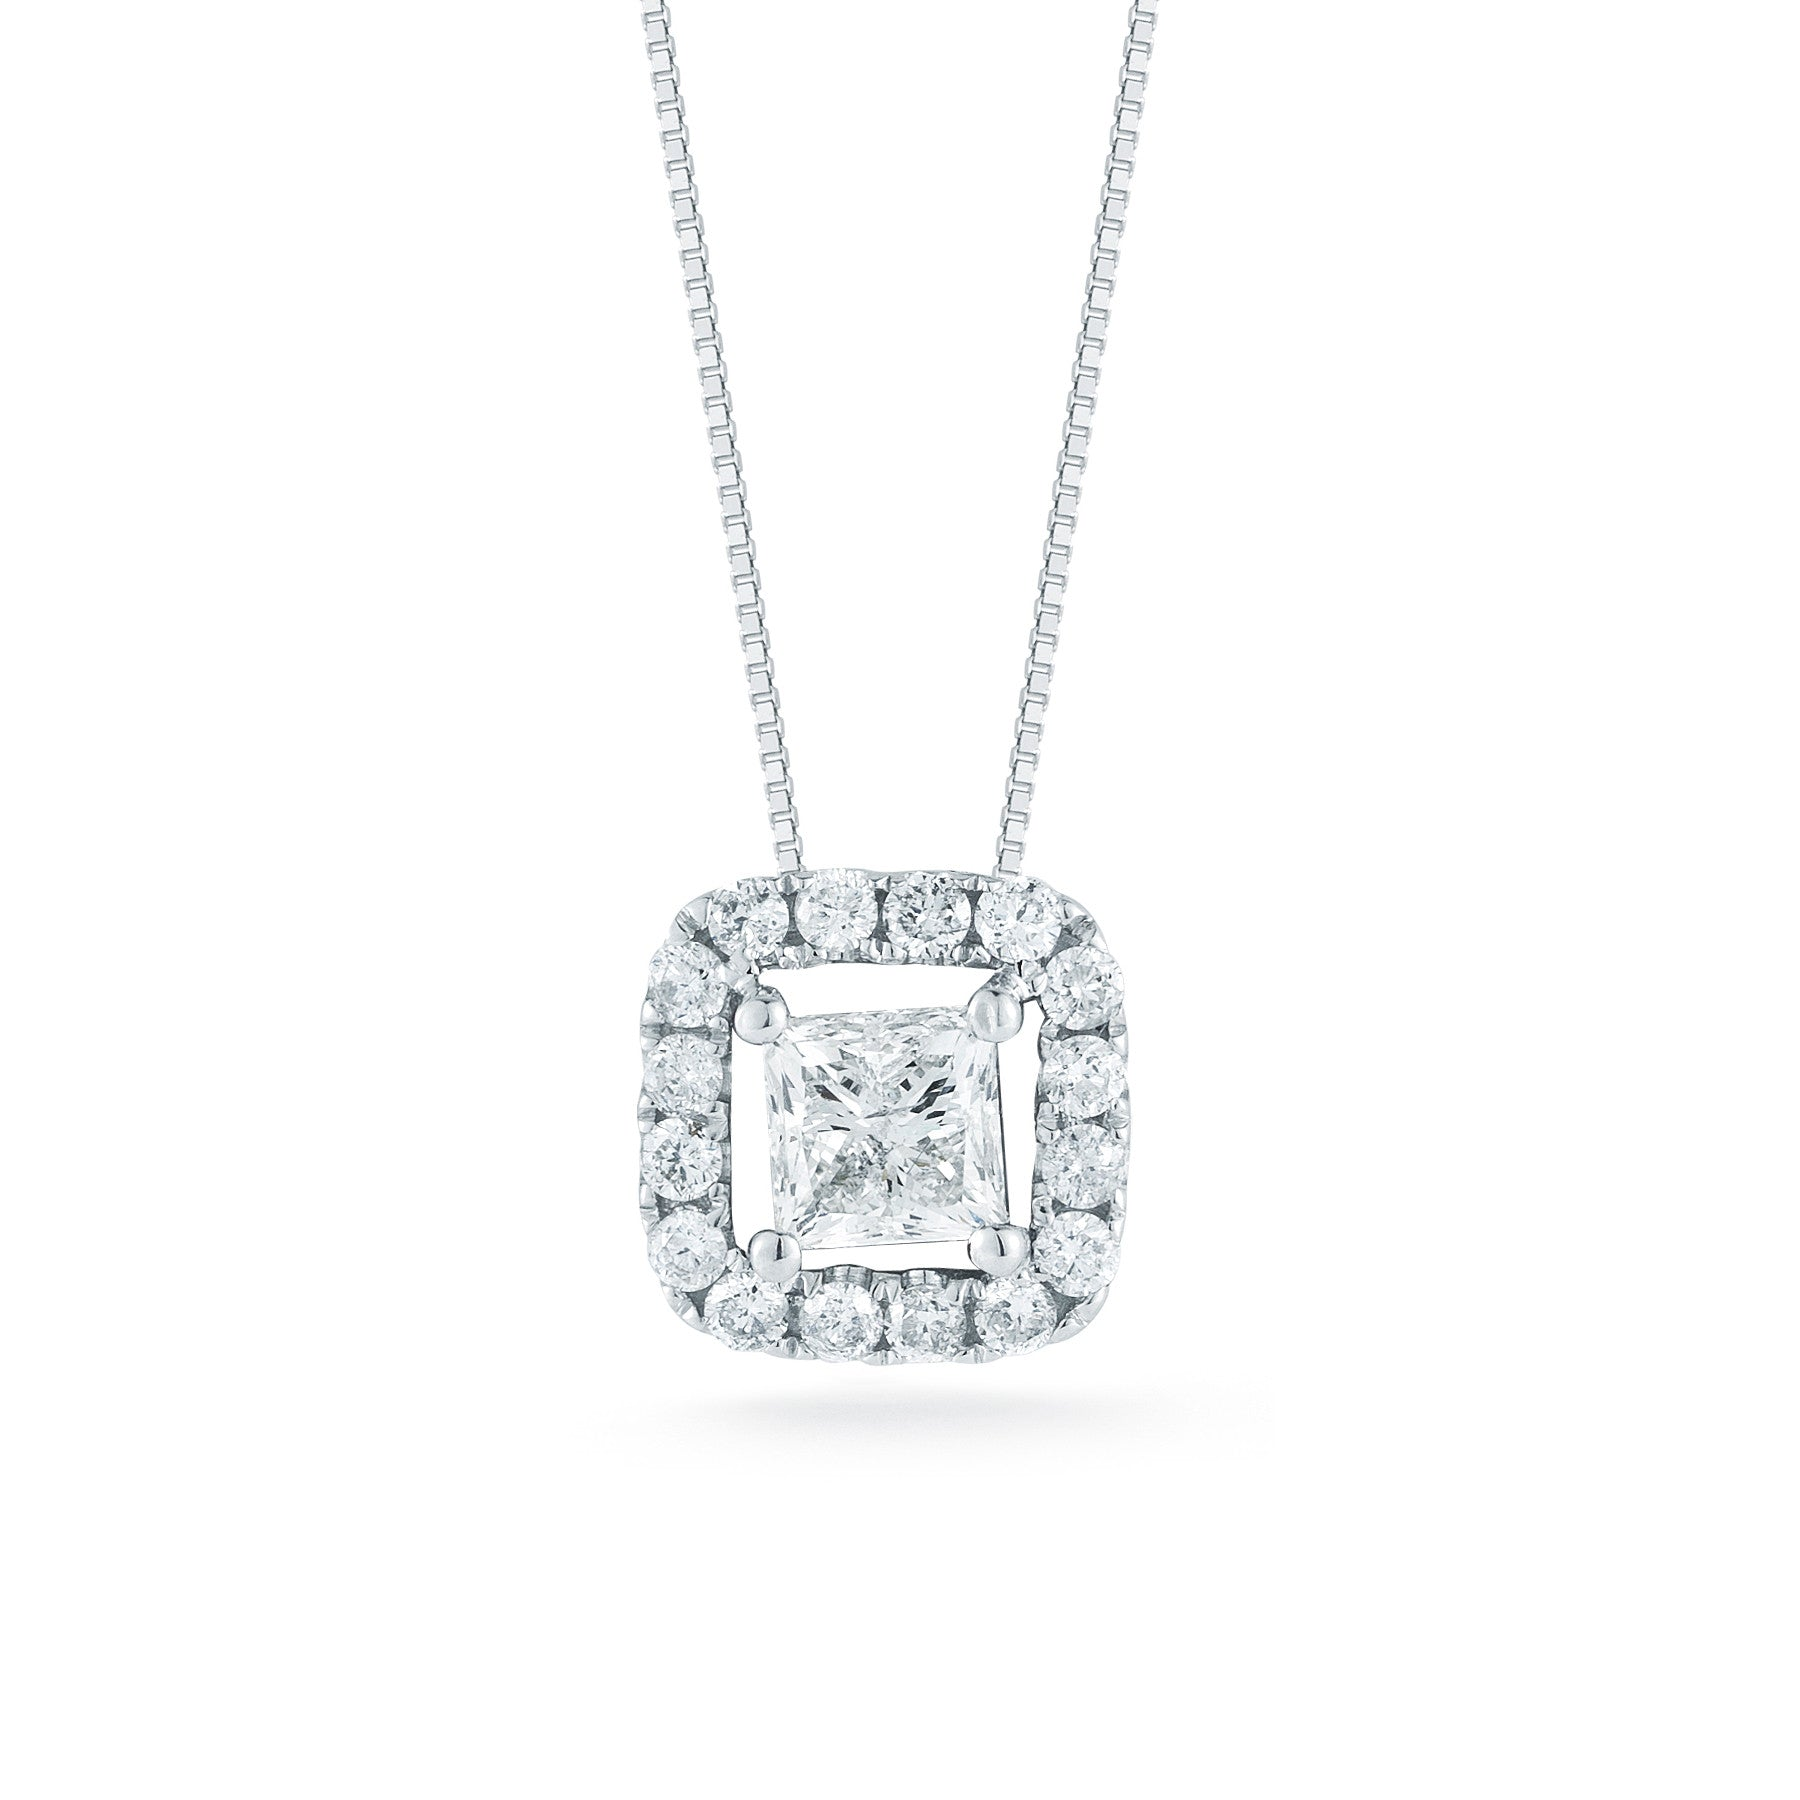 princess apparel gifts necklace p cut solitaire necklaces pendant diamond uk jewellery platinum costco